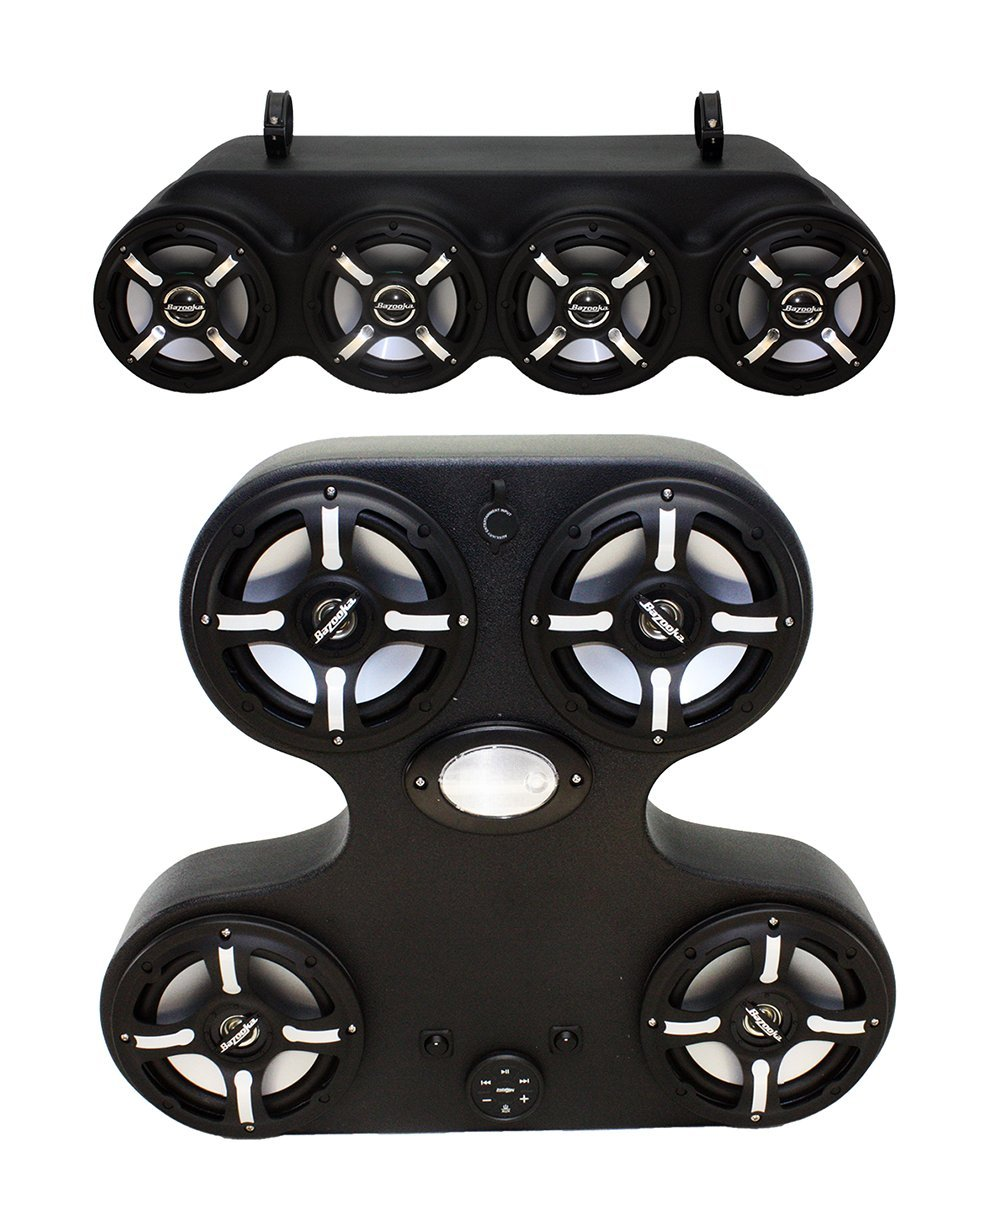 Polaris General AMPHIBWK7BZ 4 Speaker Media Console paired with a 4 Speaker Bluetooth Amplified Wake Tower System